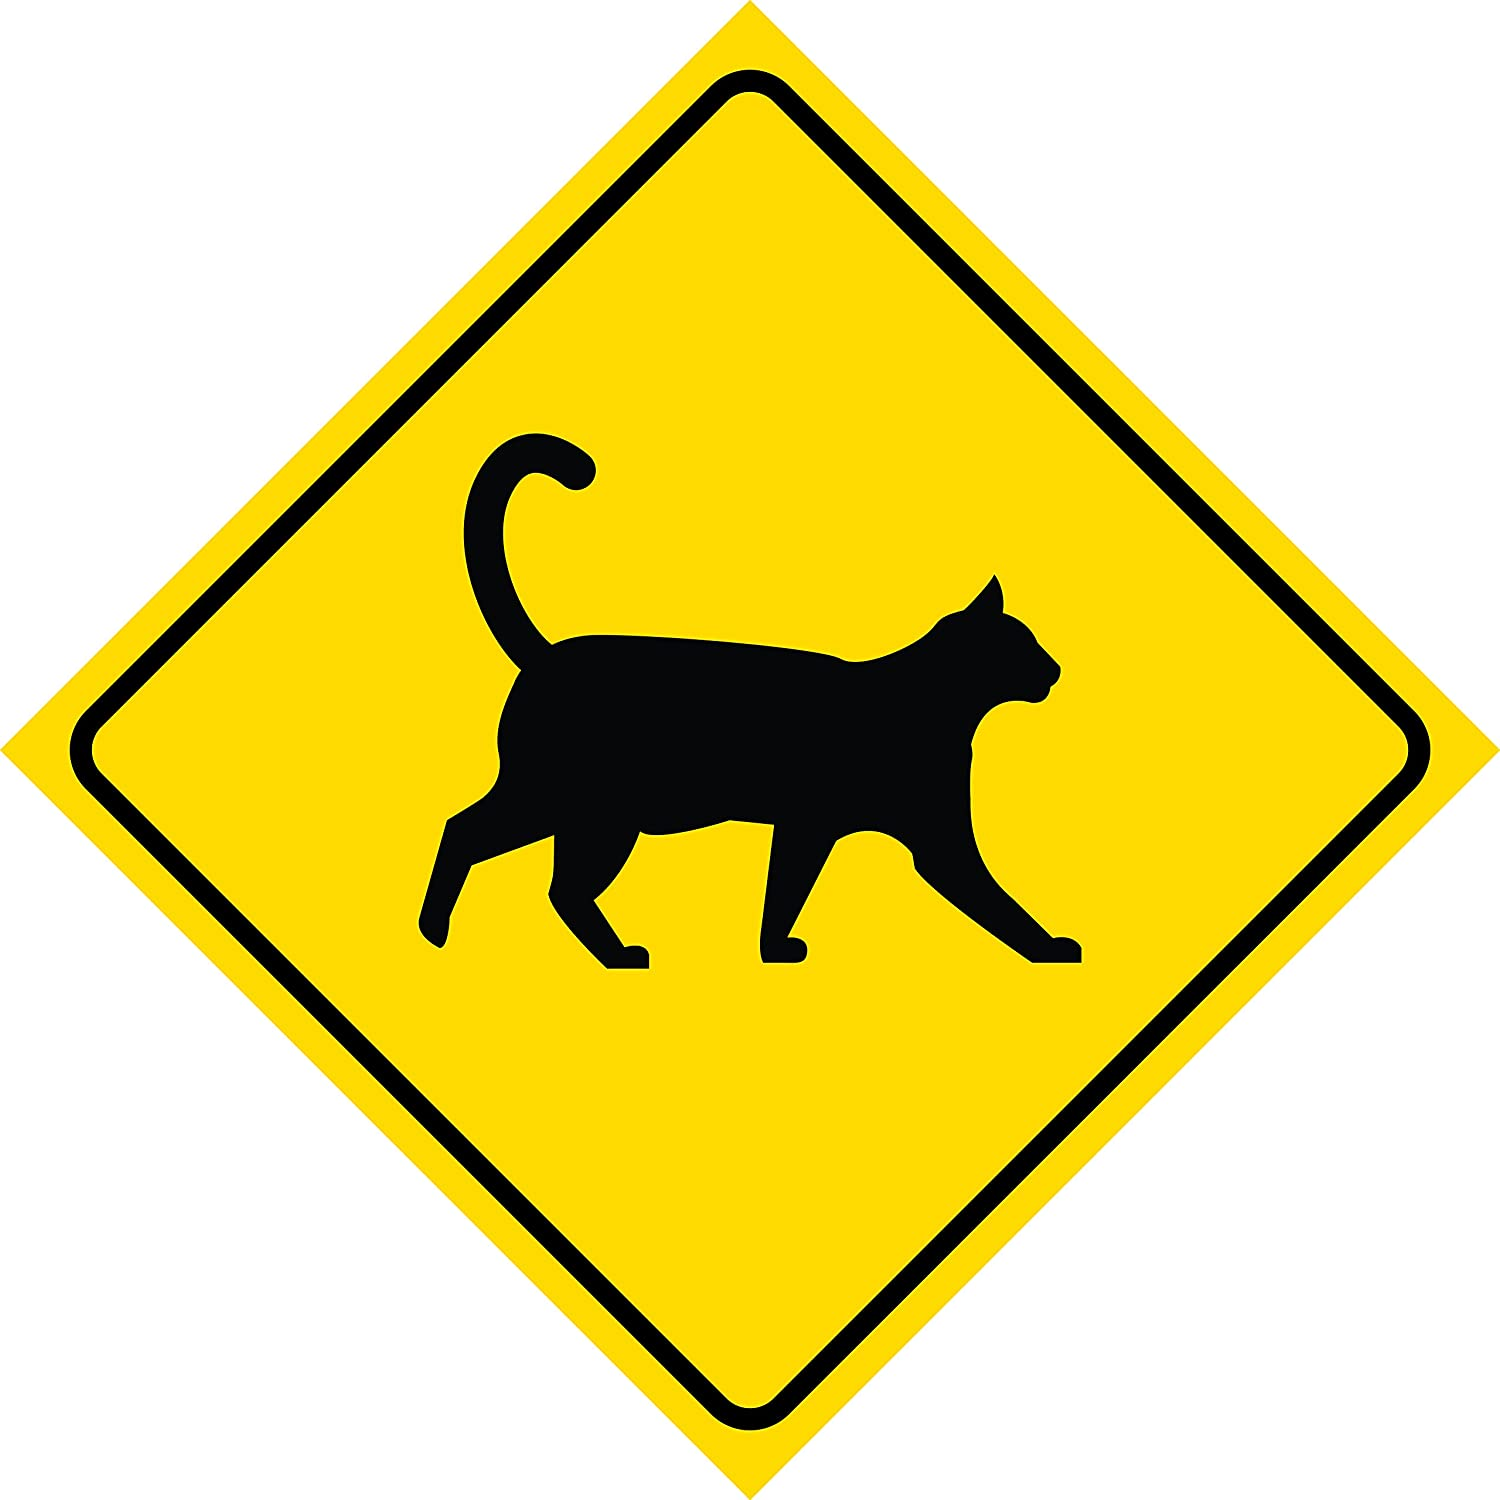 Aluminum Yellow Diamond Caution Cat Crossing Signs Commercial Metal 12x12 Square Sign iCandy Products Inc